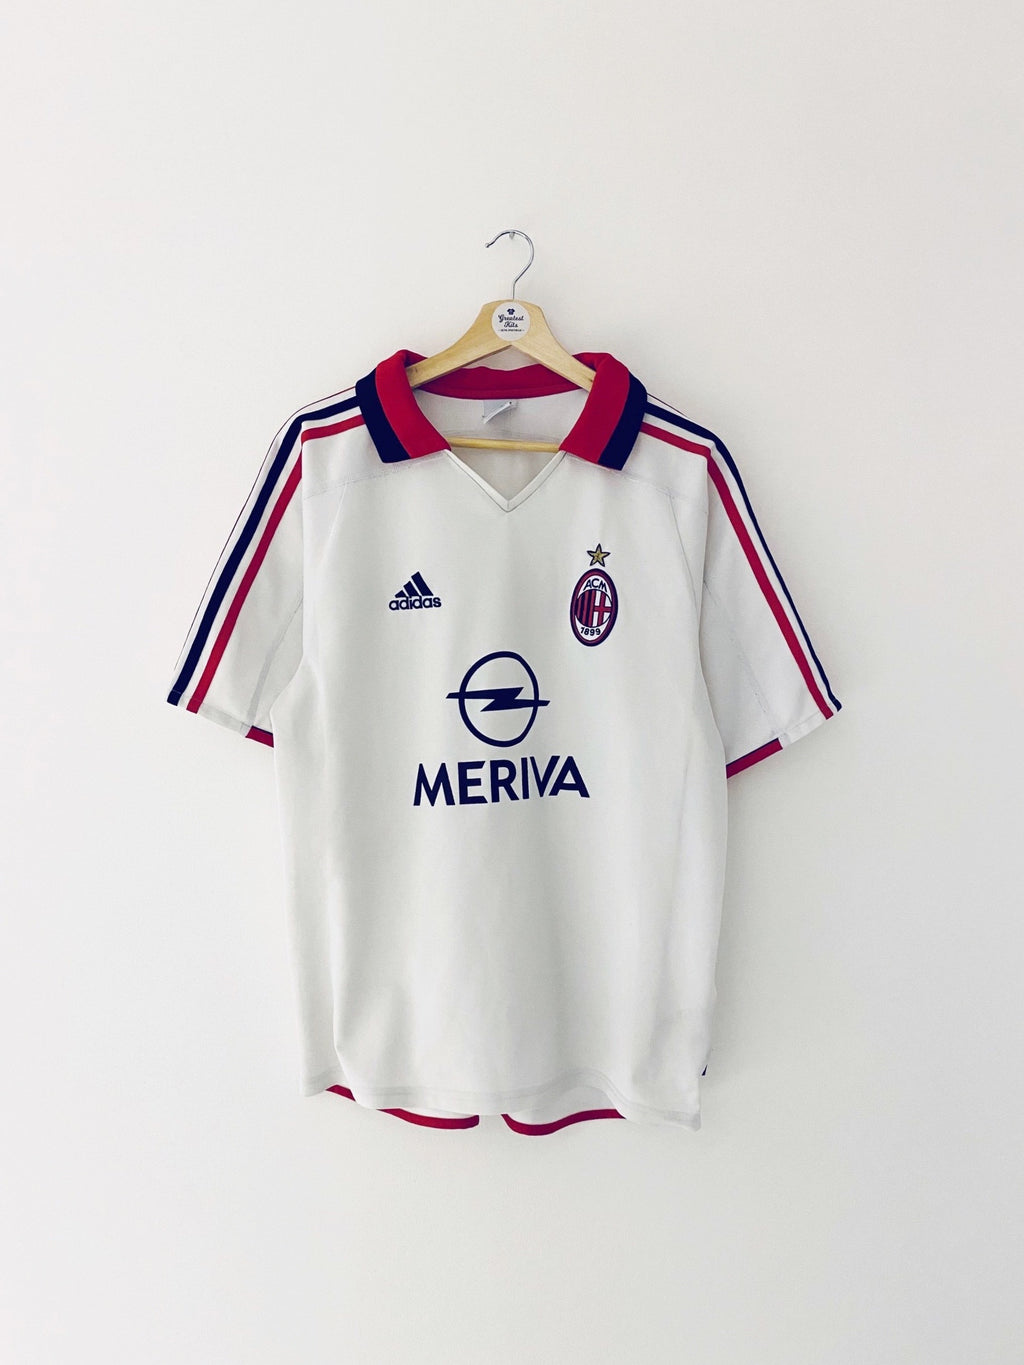 2005/06 AC Milan Away Shirt (M) 7/10